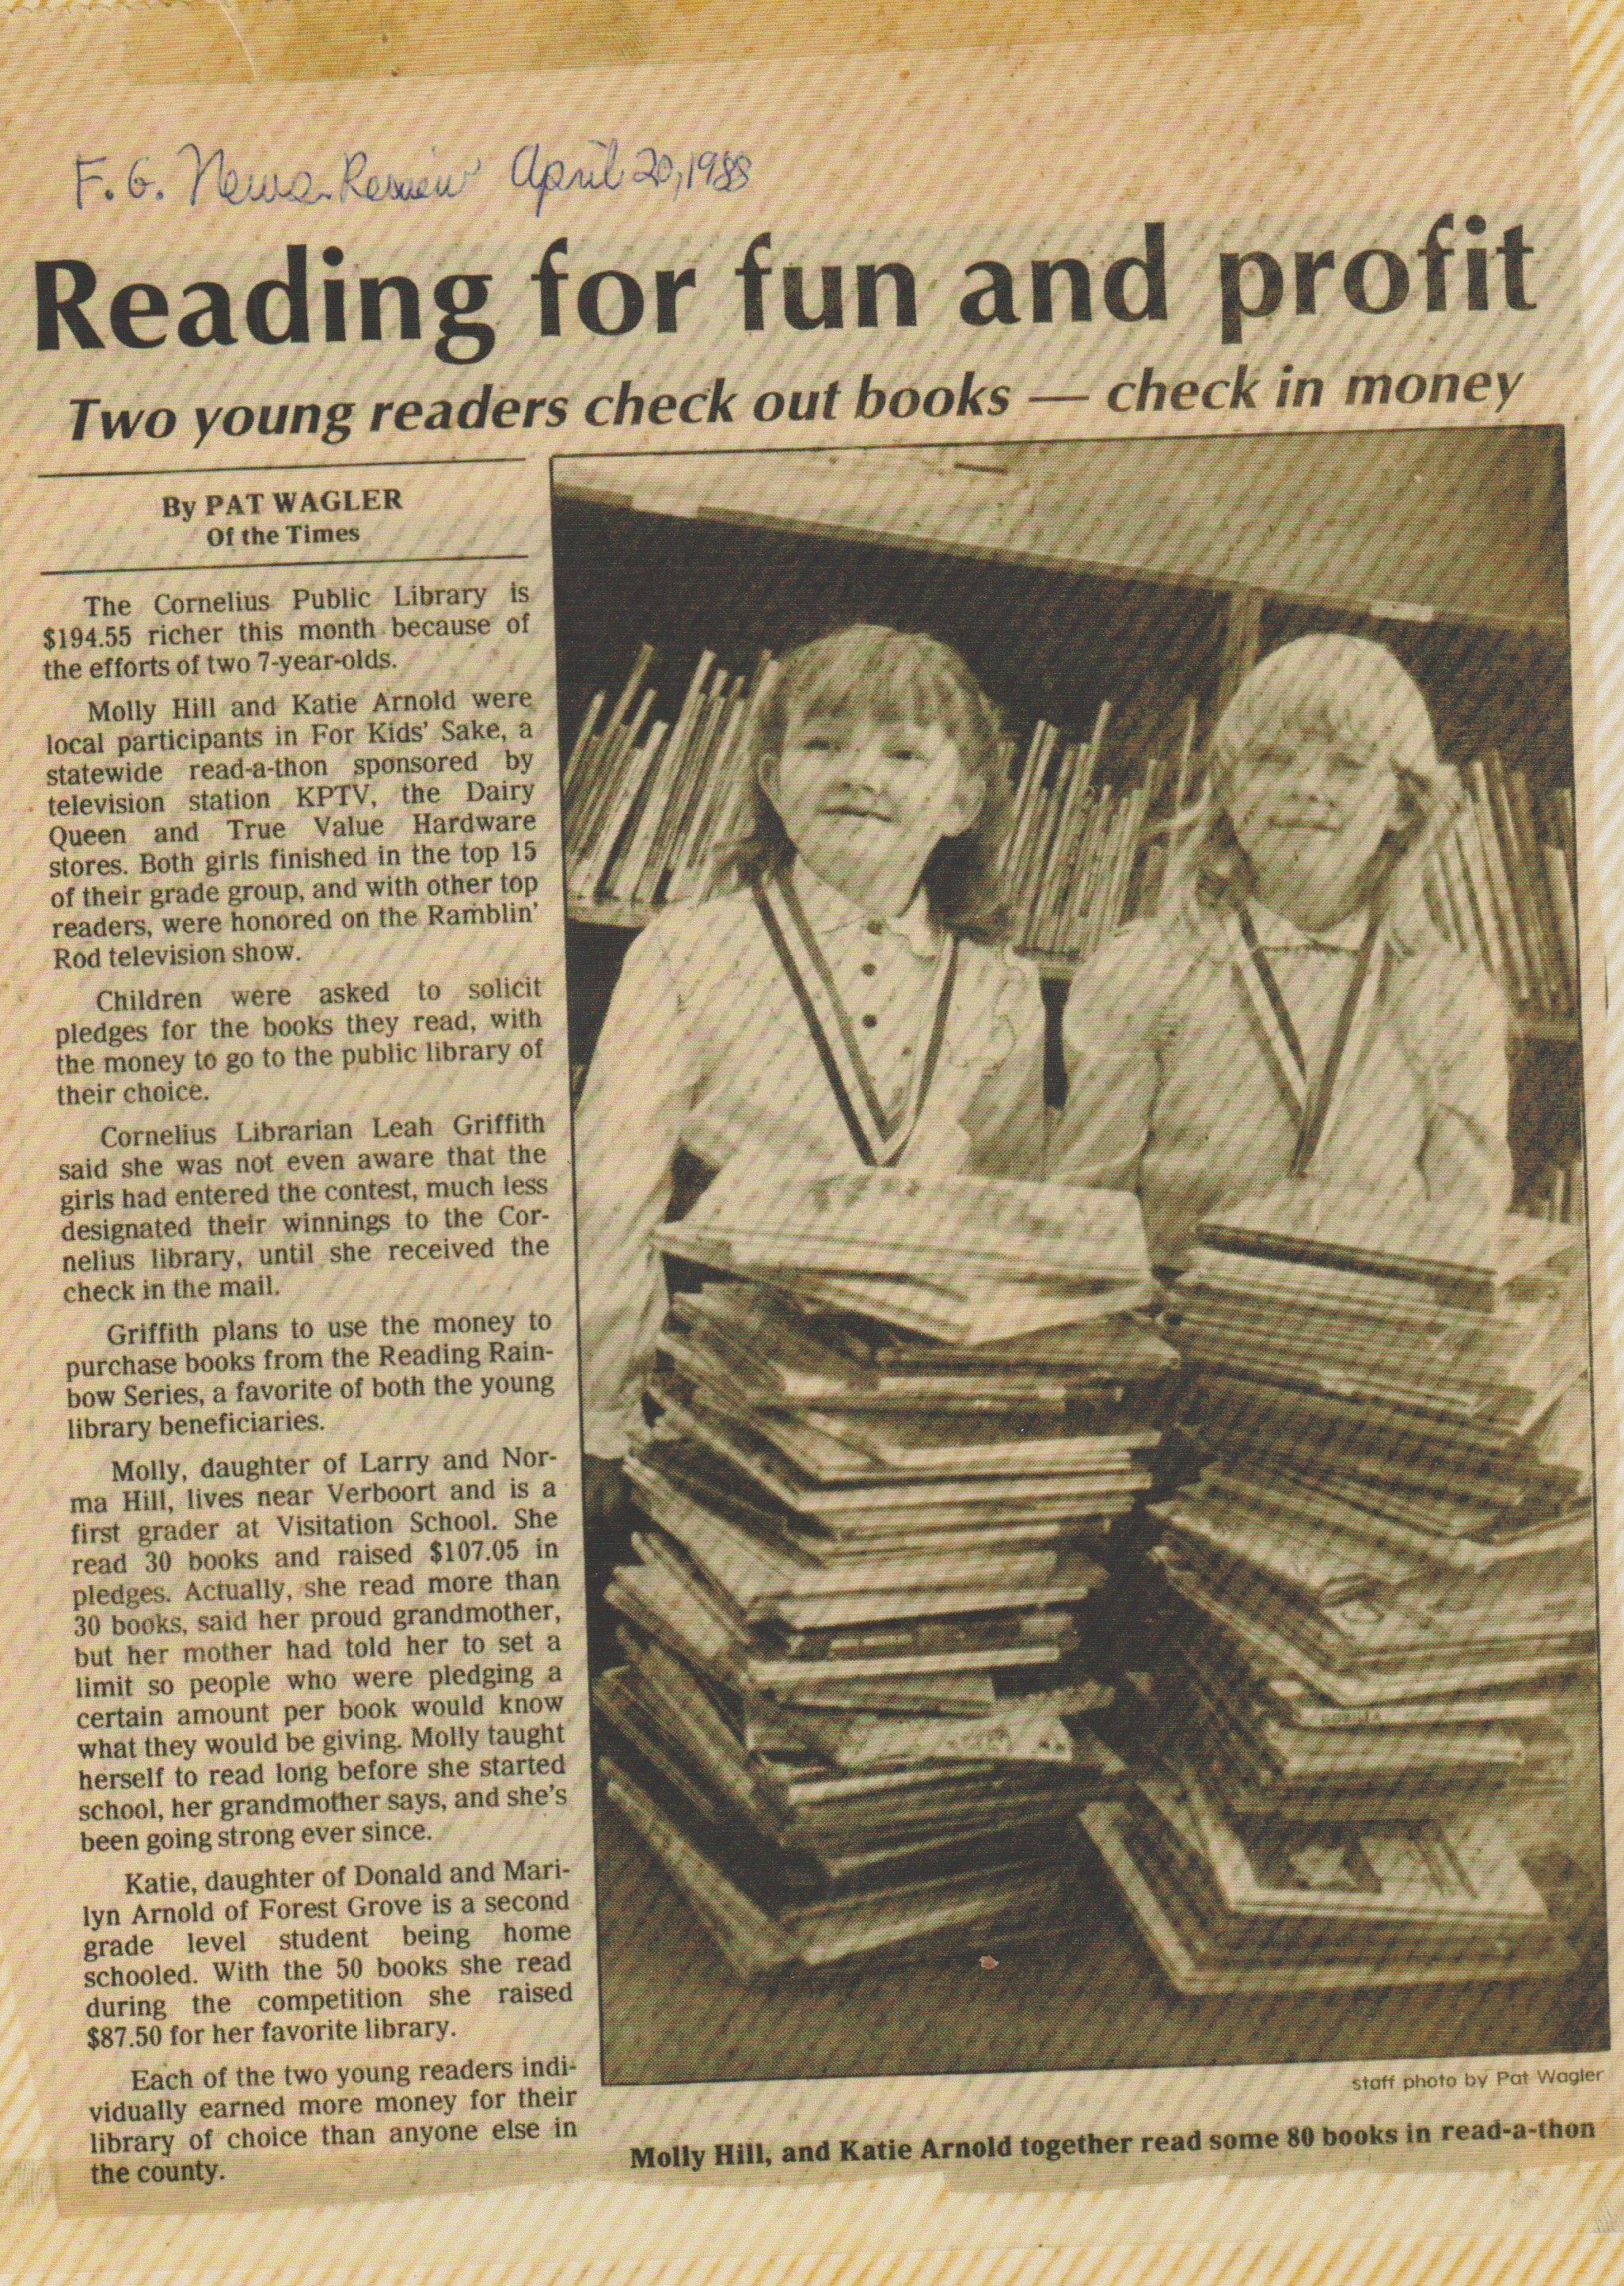 1988-04-20 - Molly Hill, Katie Arnold, county winners - 80 books read, state-wide For Kids Sake read-a-thon.jpg